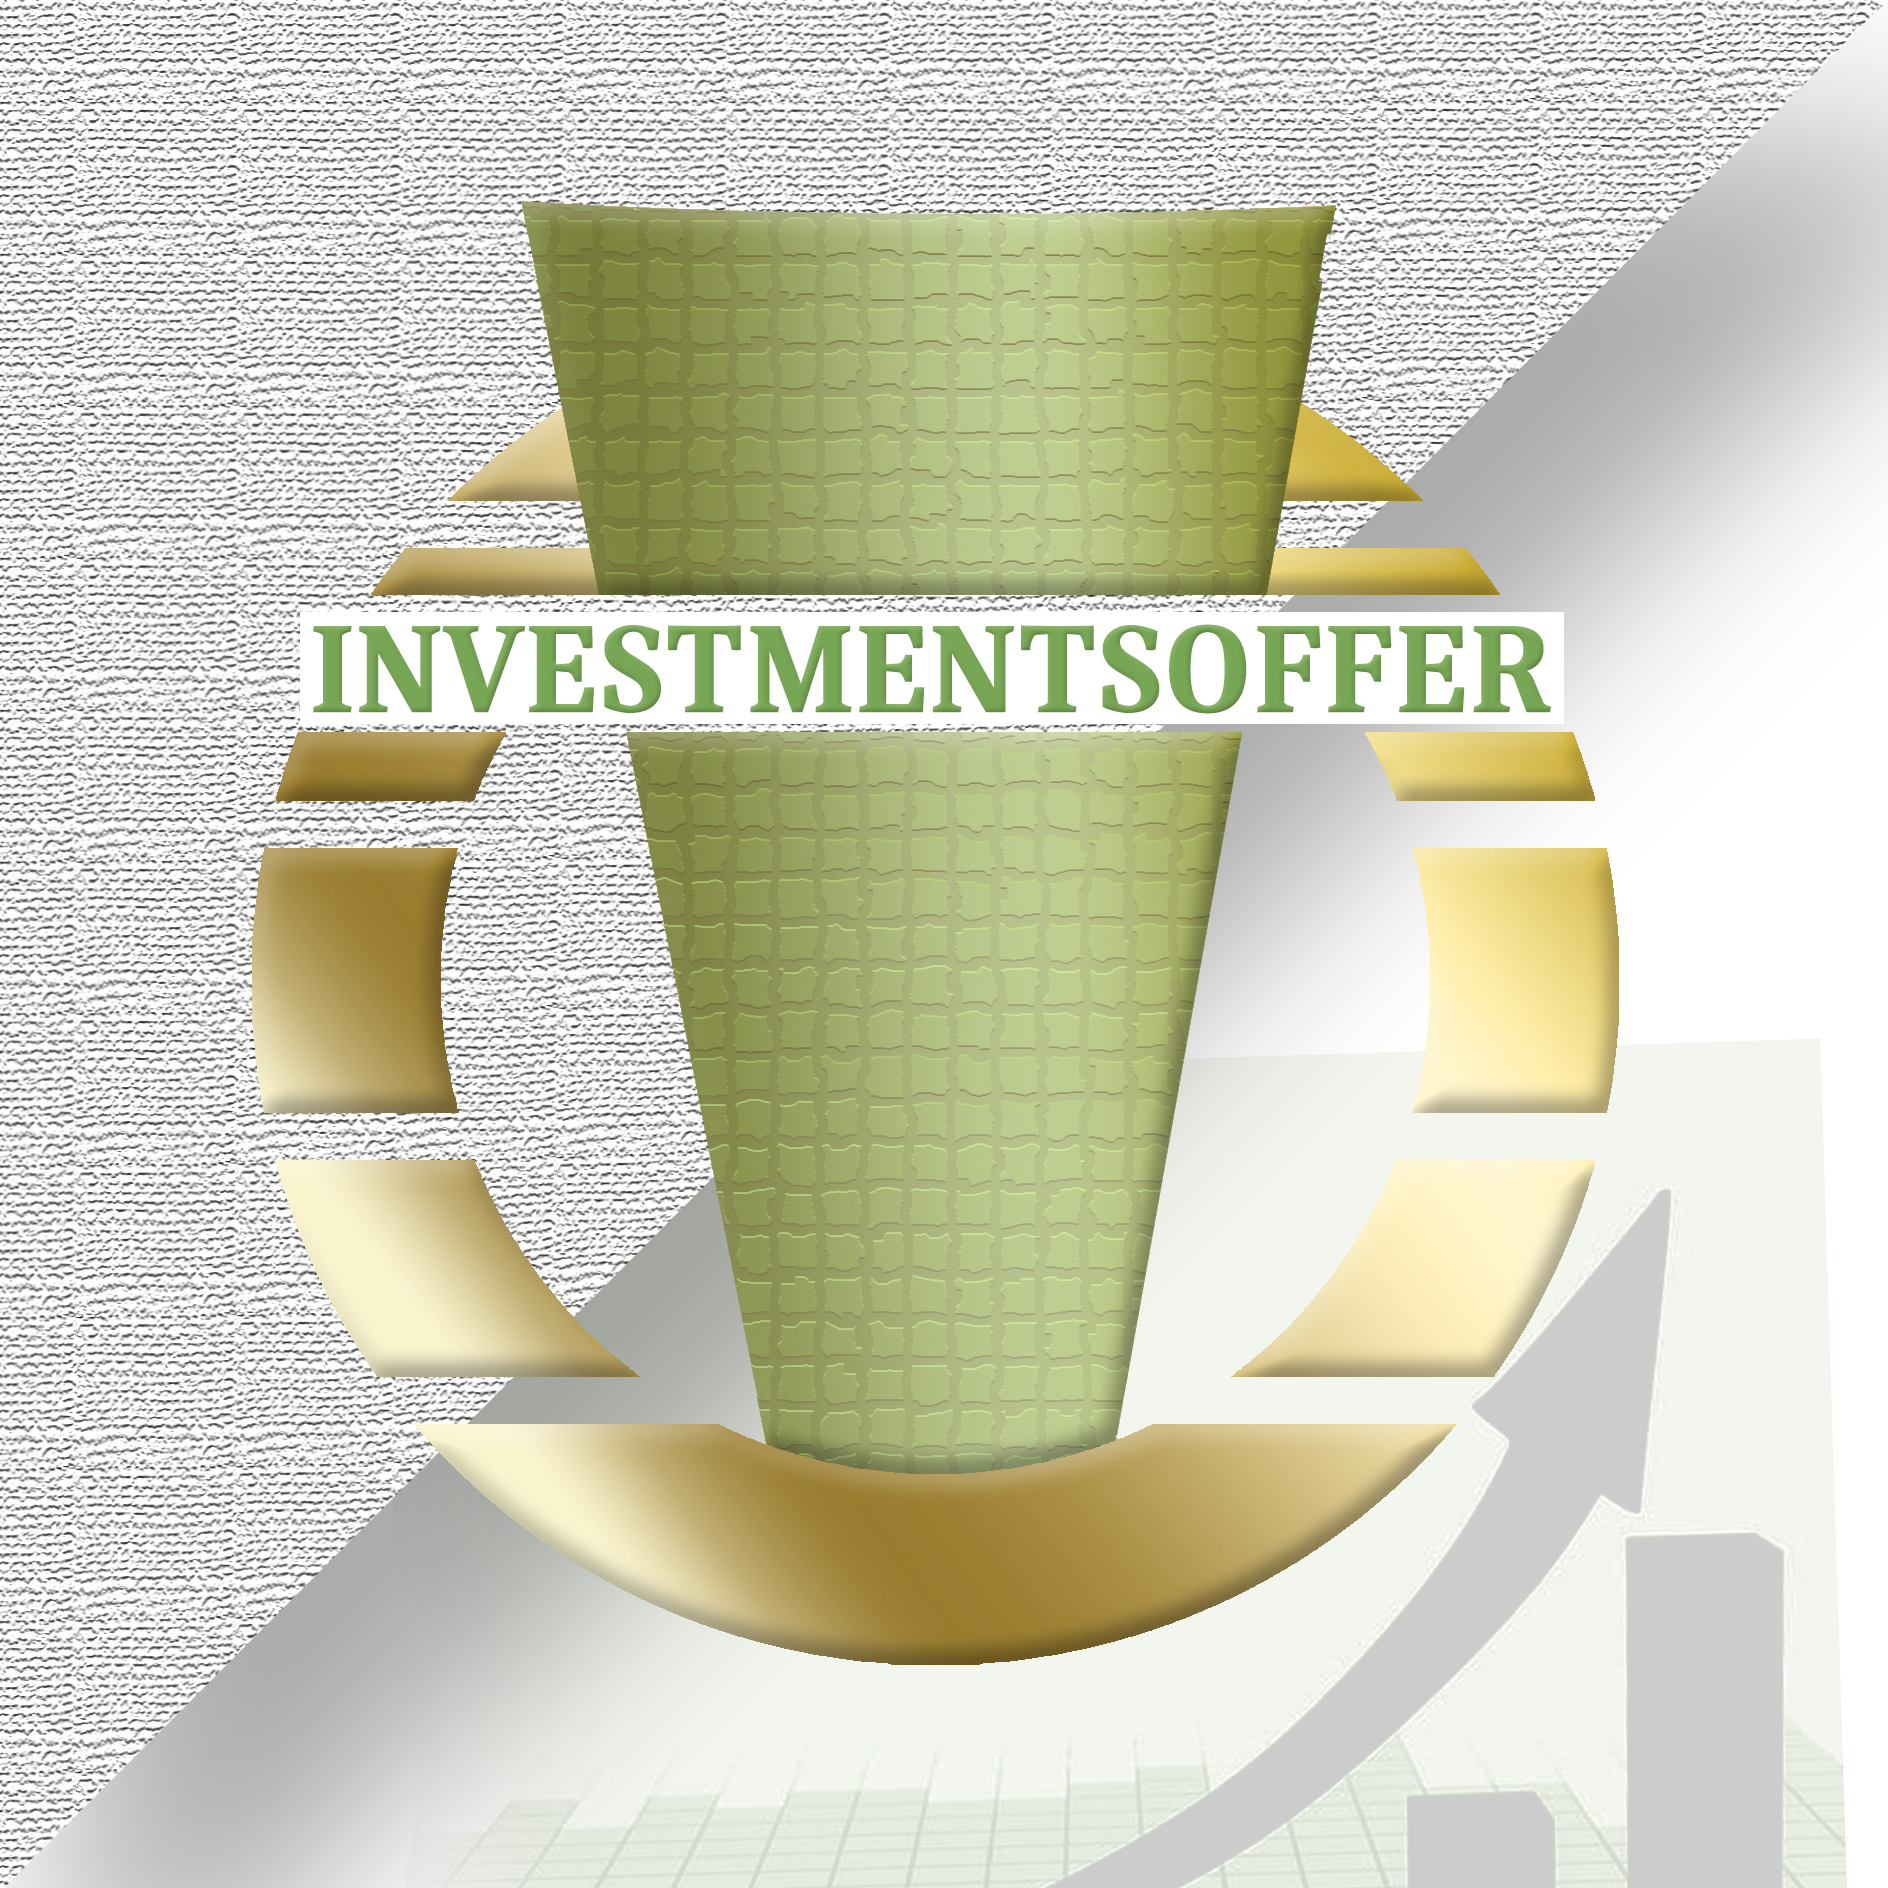 Investments Offer